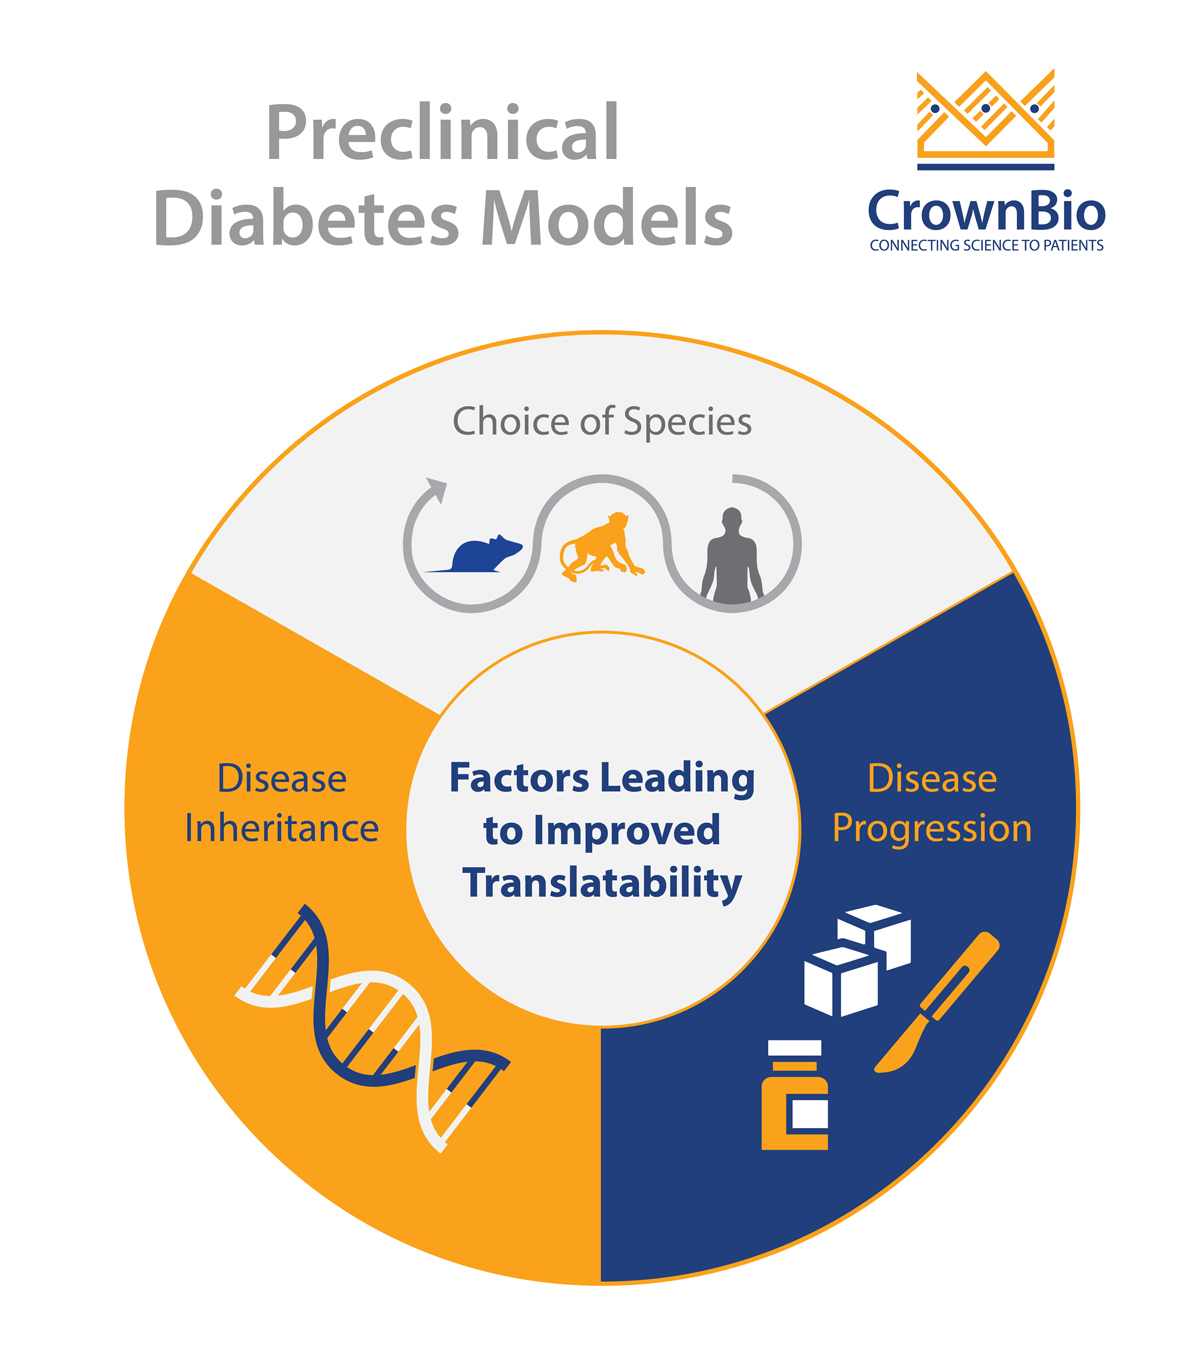 Selecting Preclinical Models of Diabetes